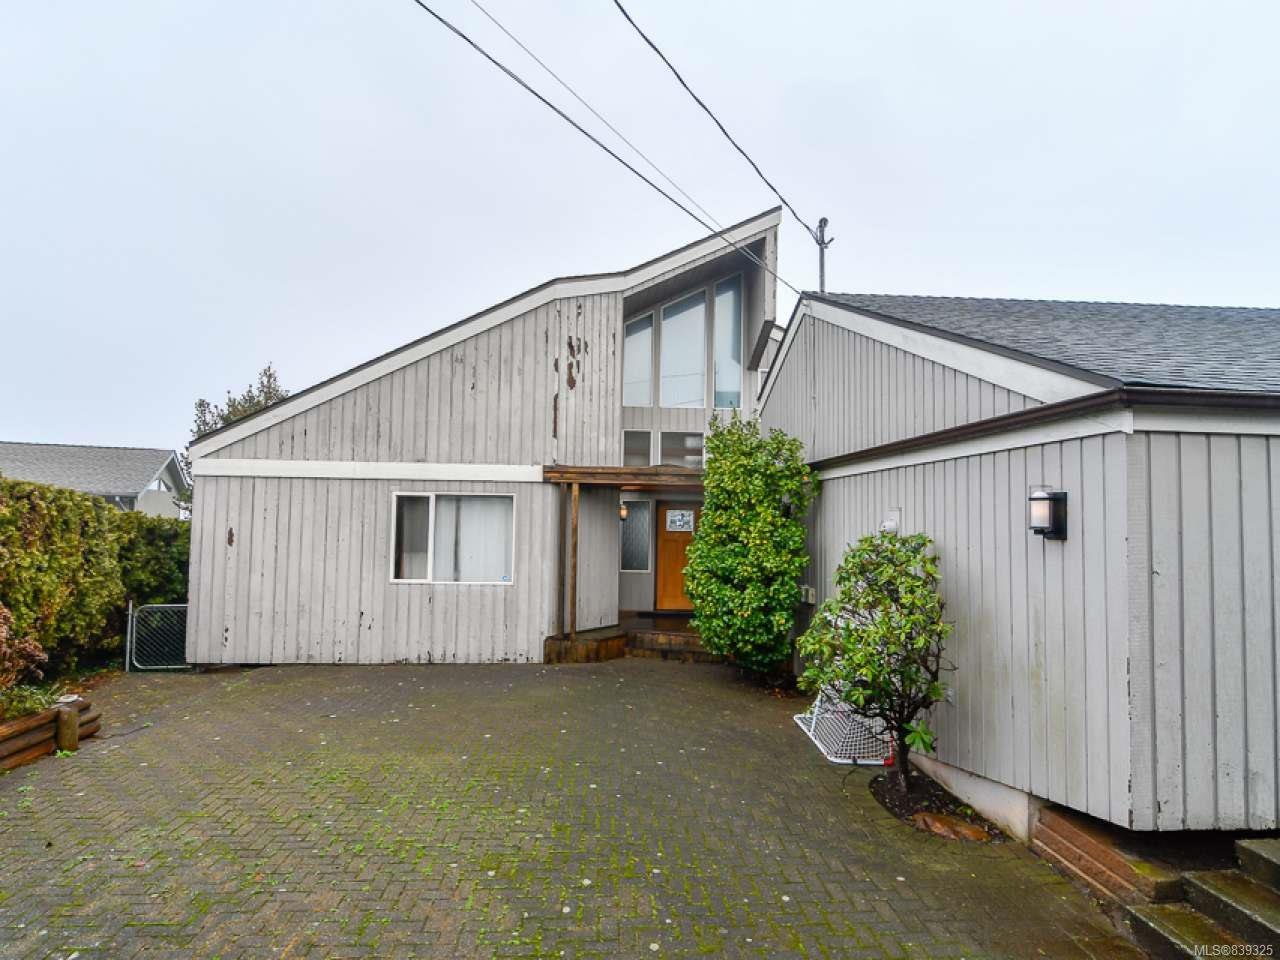 Main Photo: 517 S McLean St in CAMPBELL RIVER: CR Campbell River Central House for sale (Campbell River)  : MLS®# 839325